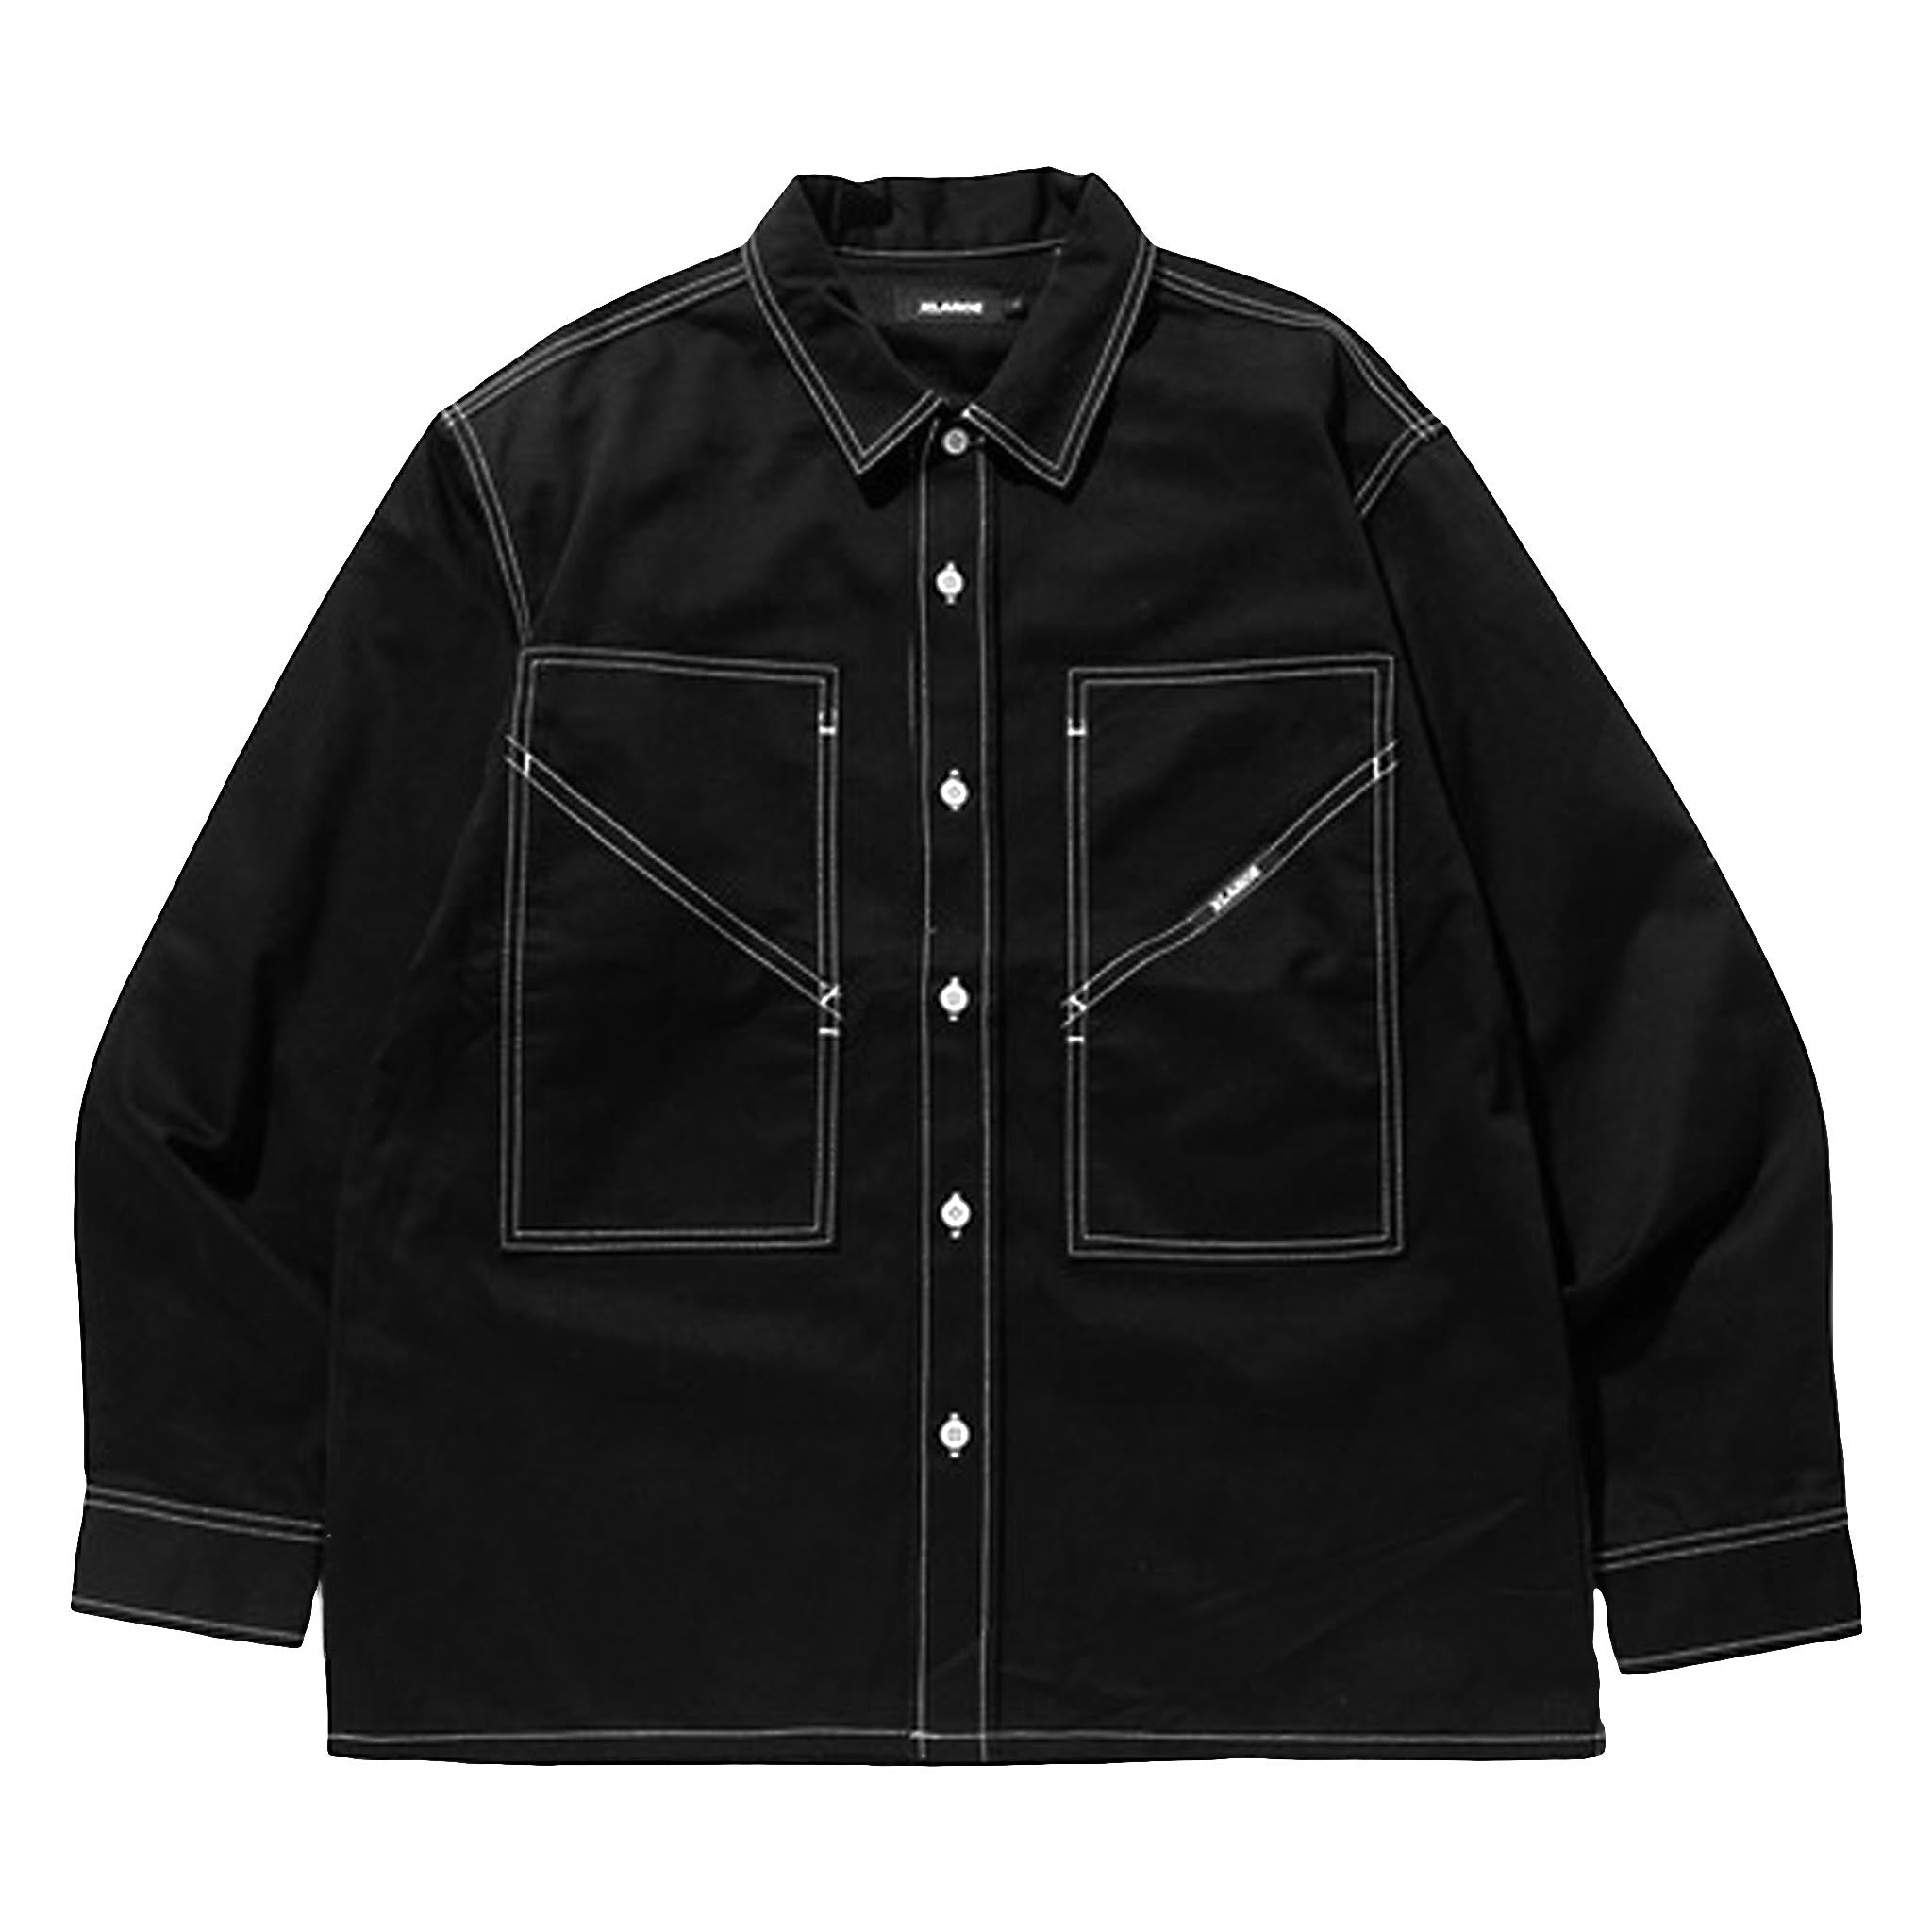 XLARGE Contrast Stitch Work Shirt Black